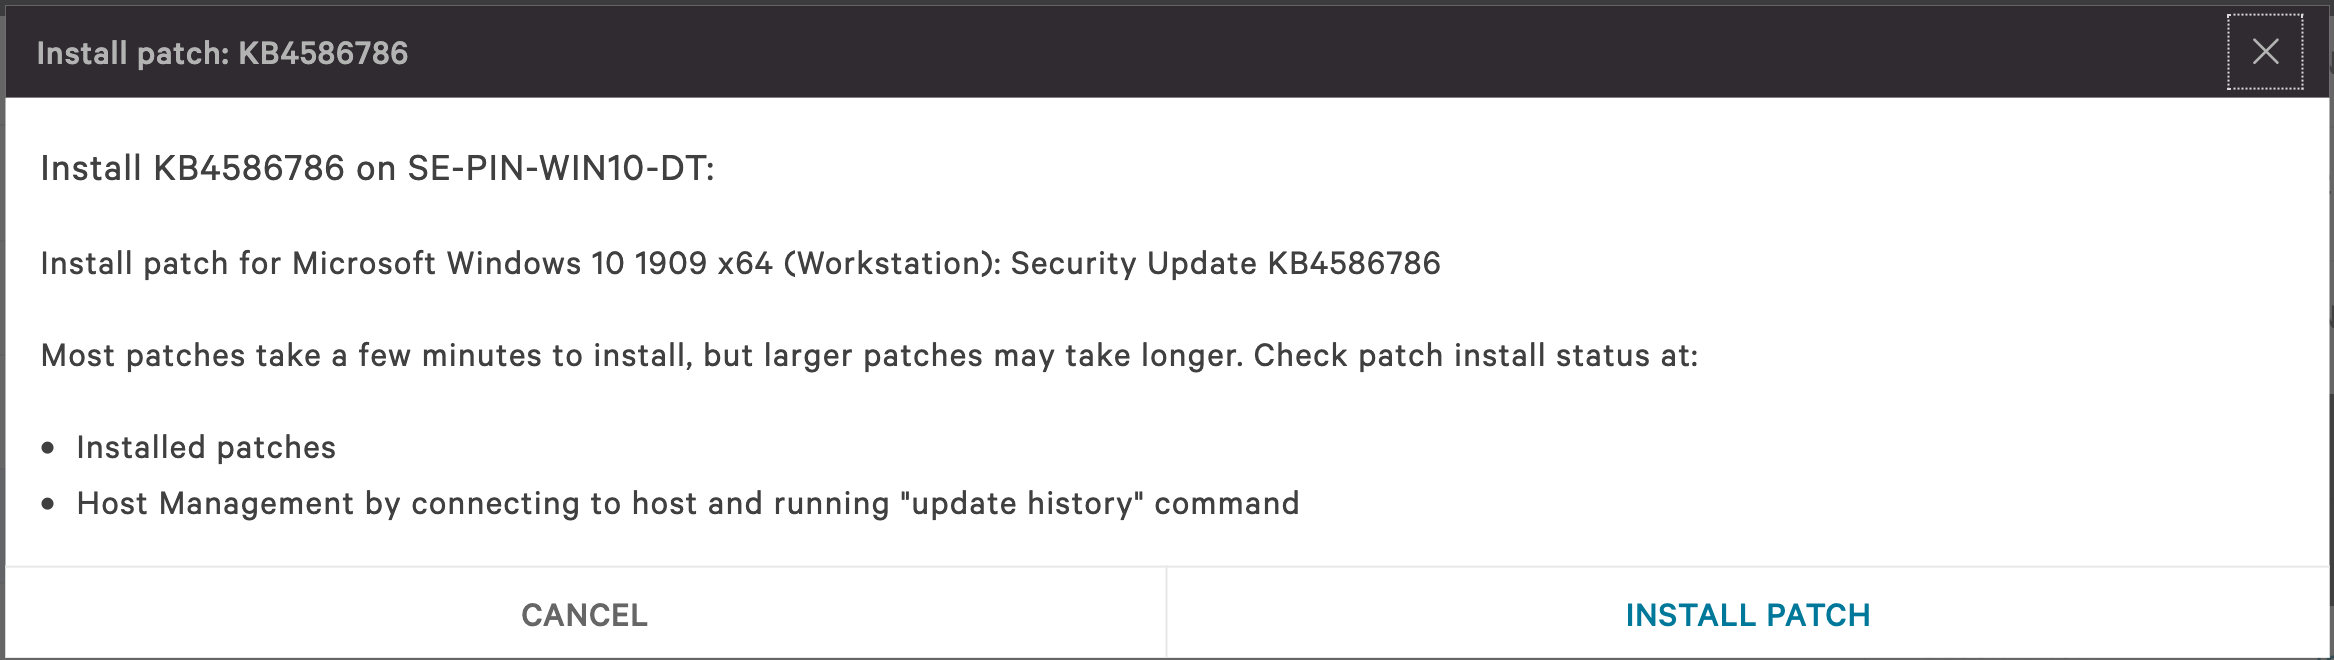 Install patch confirmation window